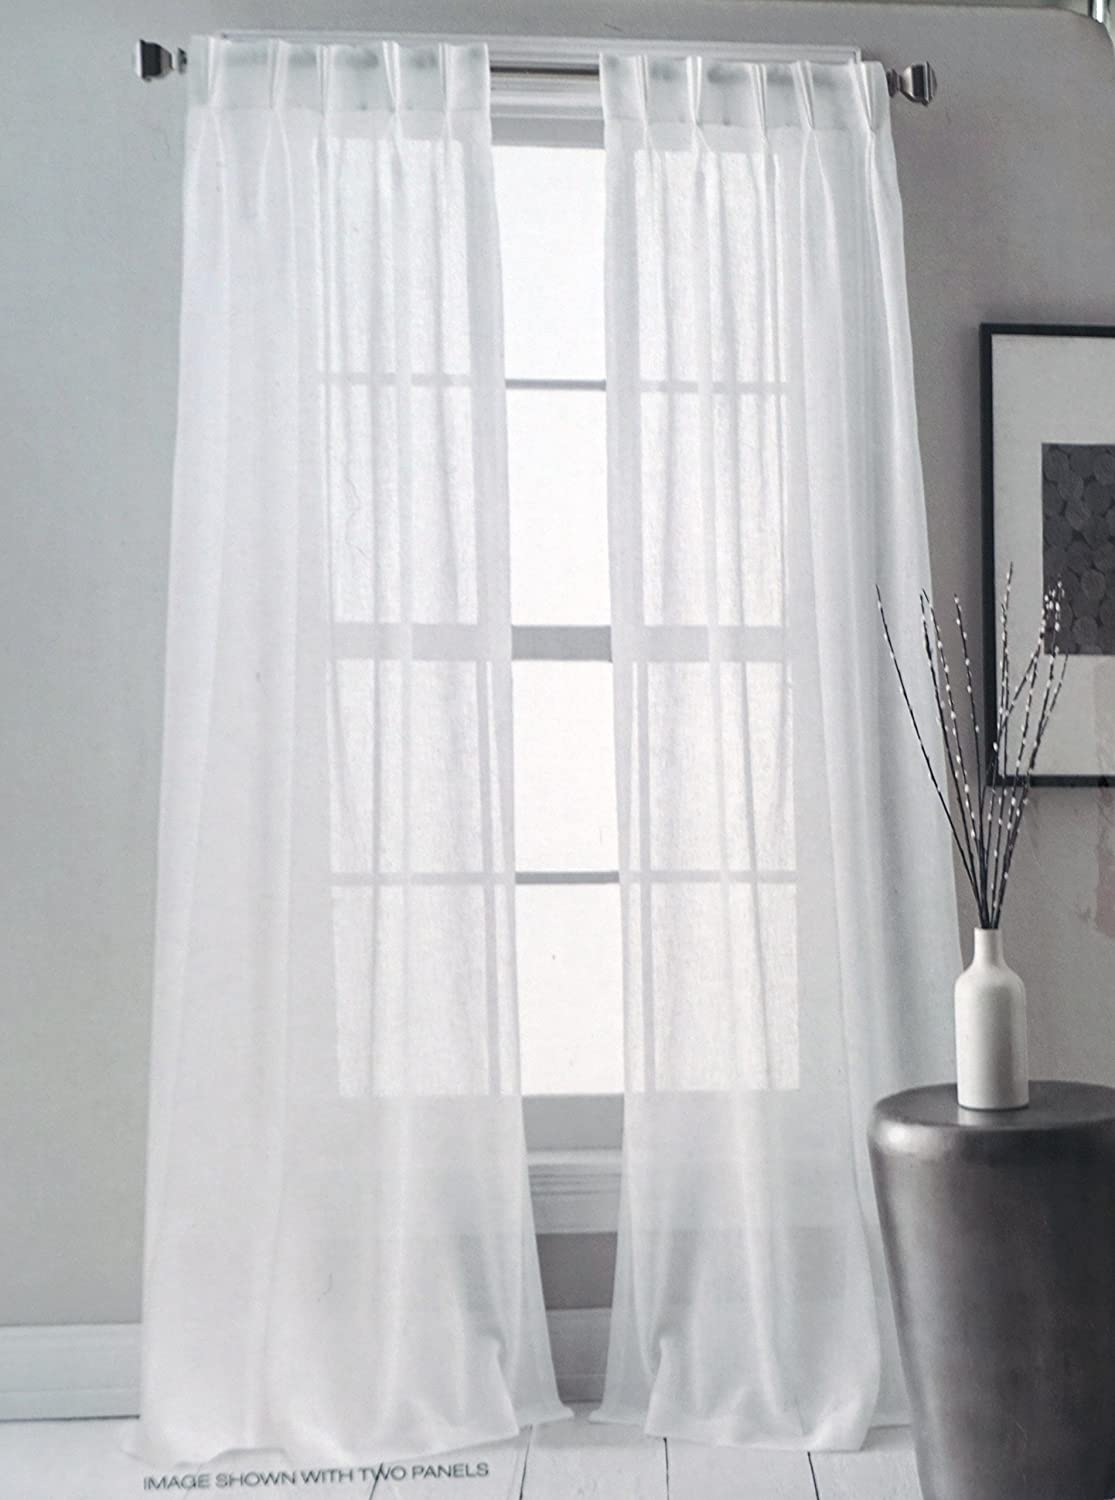 28 Inches by 84 Inches Downtown Sheer DKNY Pair of Window Pinch Pleat Panels Curtains Drapery Set of 2 Solid White